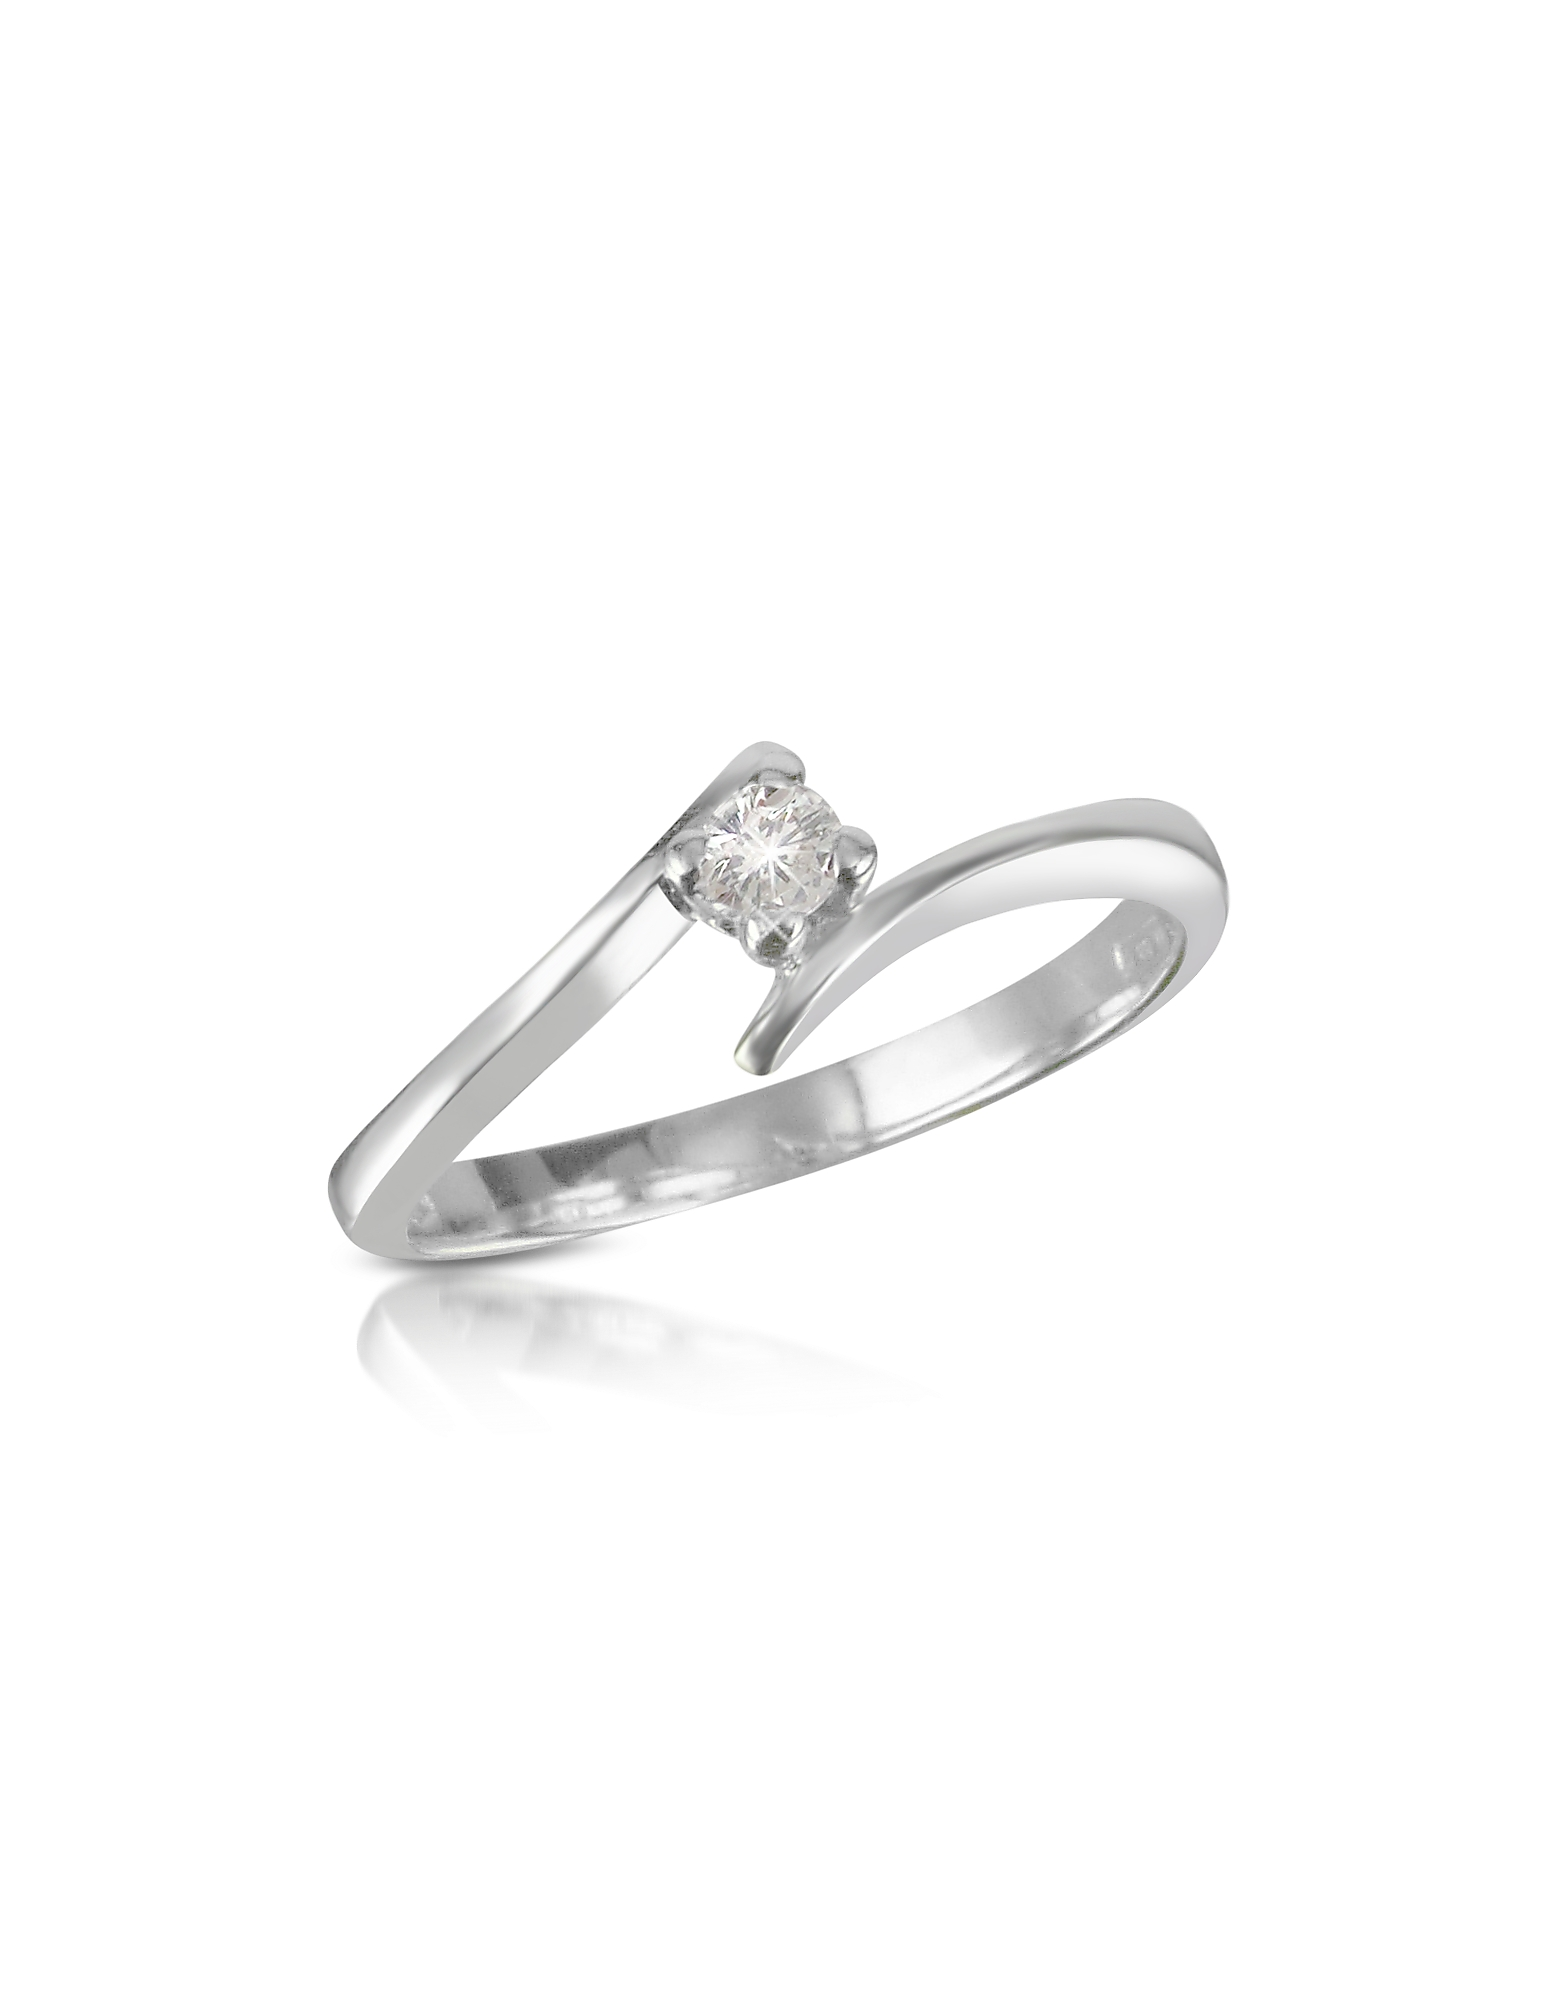 Forzieri Rings, 0.10 ct Diamond Solitaire Ring